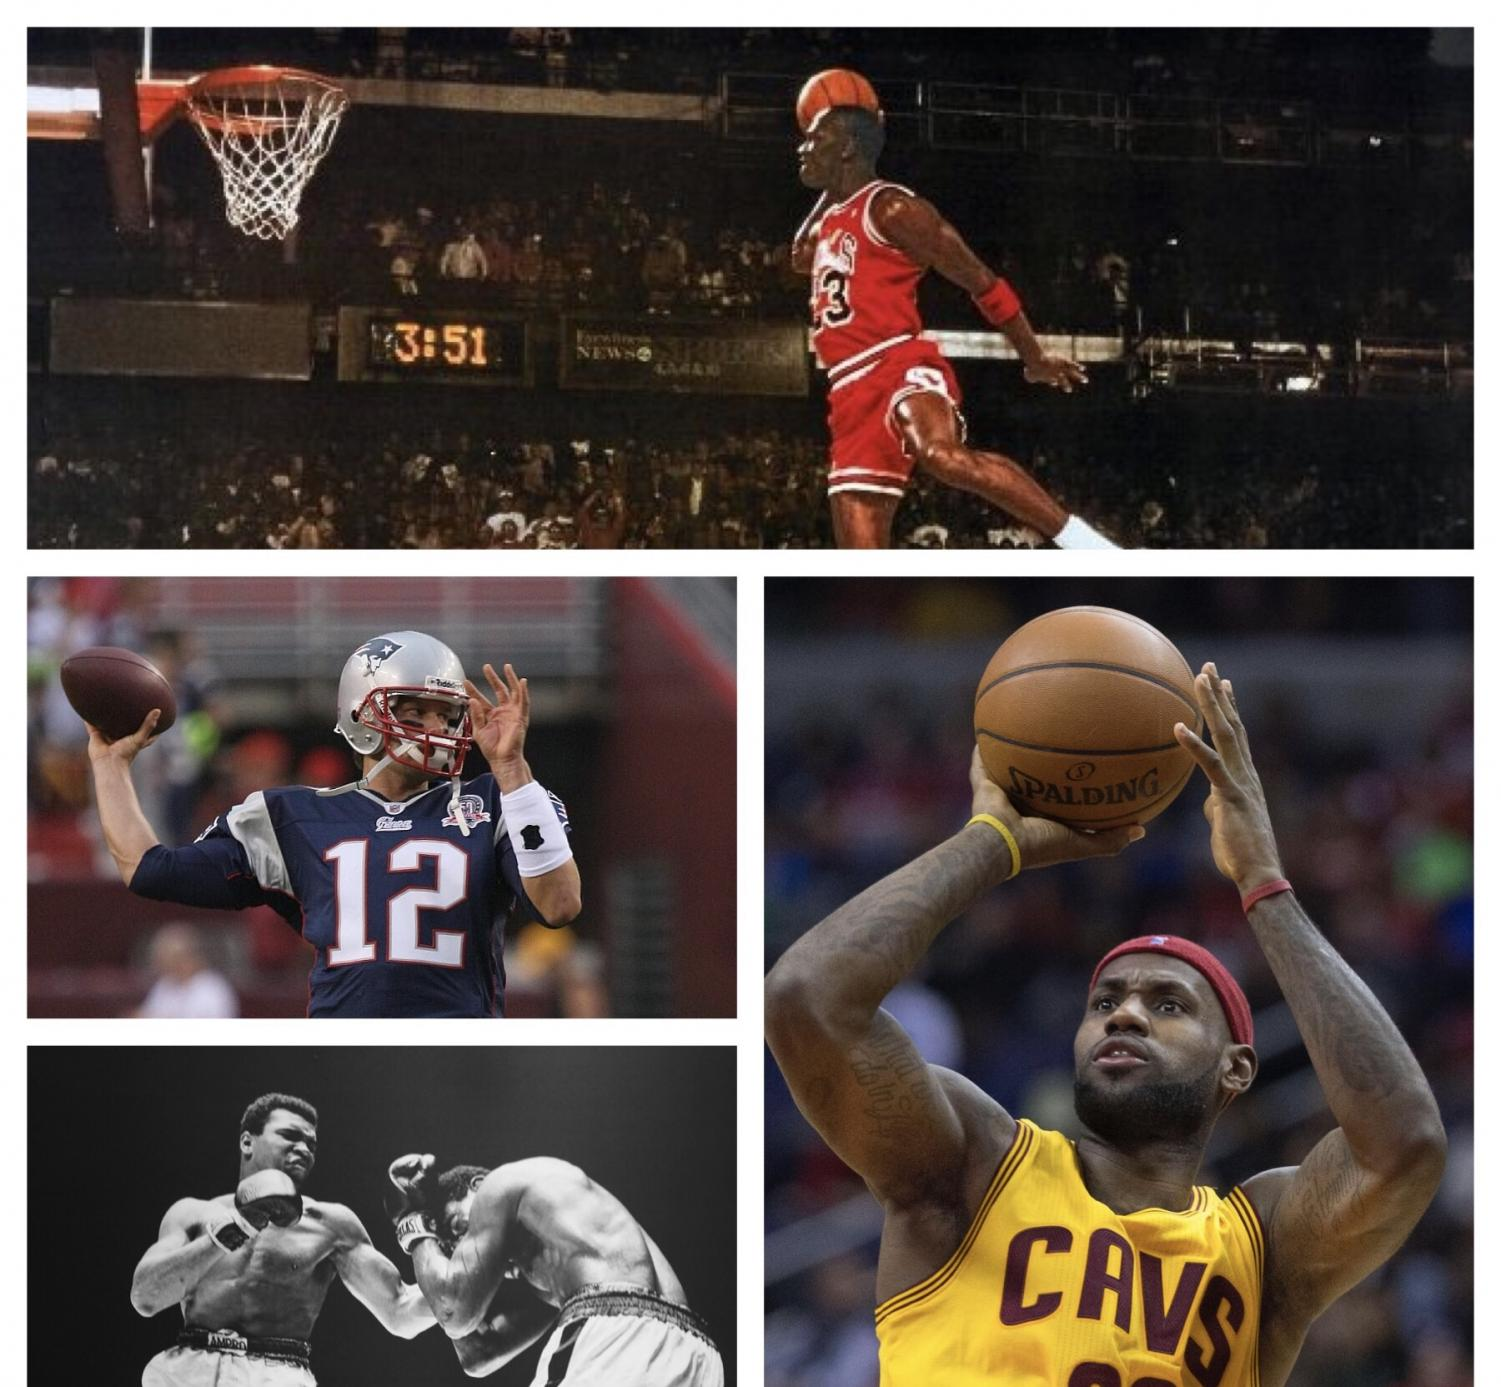 From top clockwise: Michael Jordan, LeBron James, Muhammed Ali, and Tom Brady.